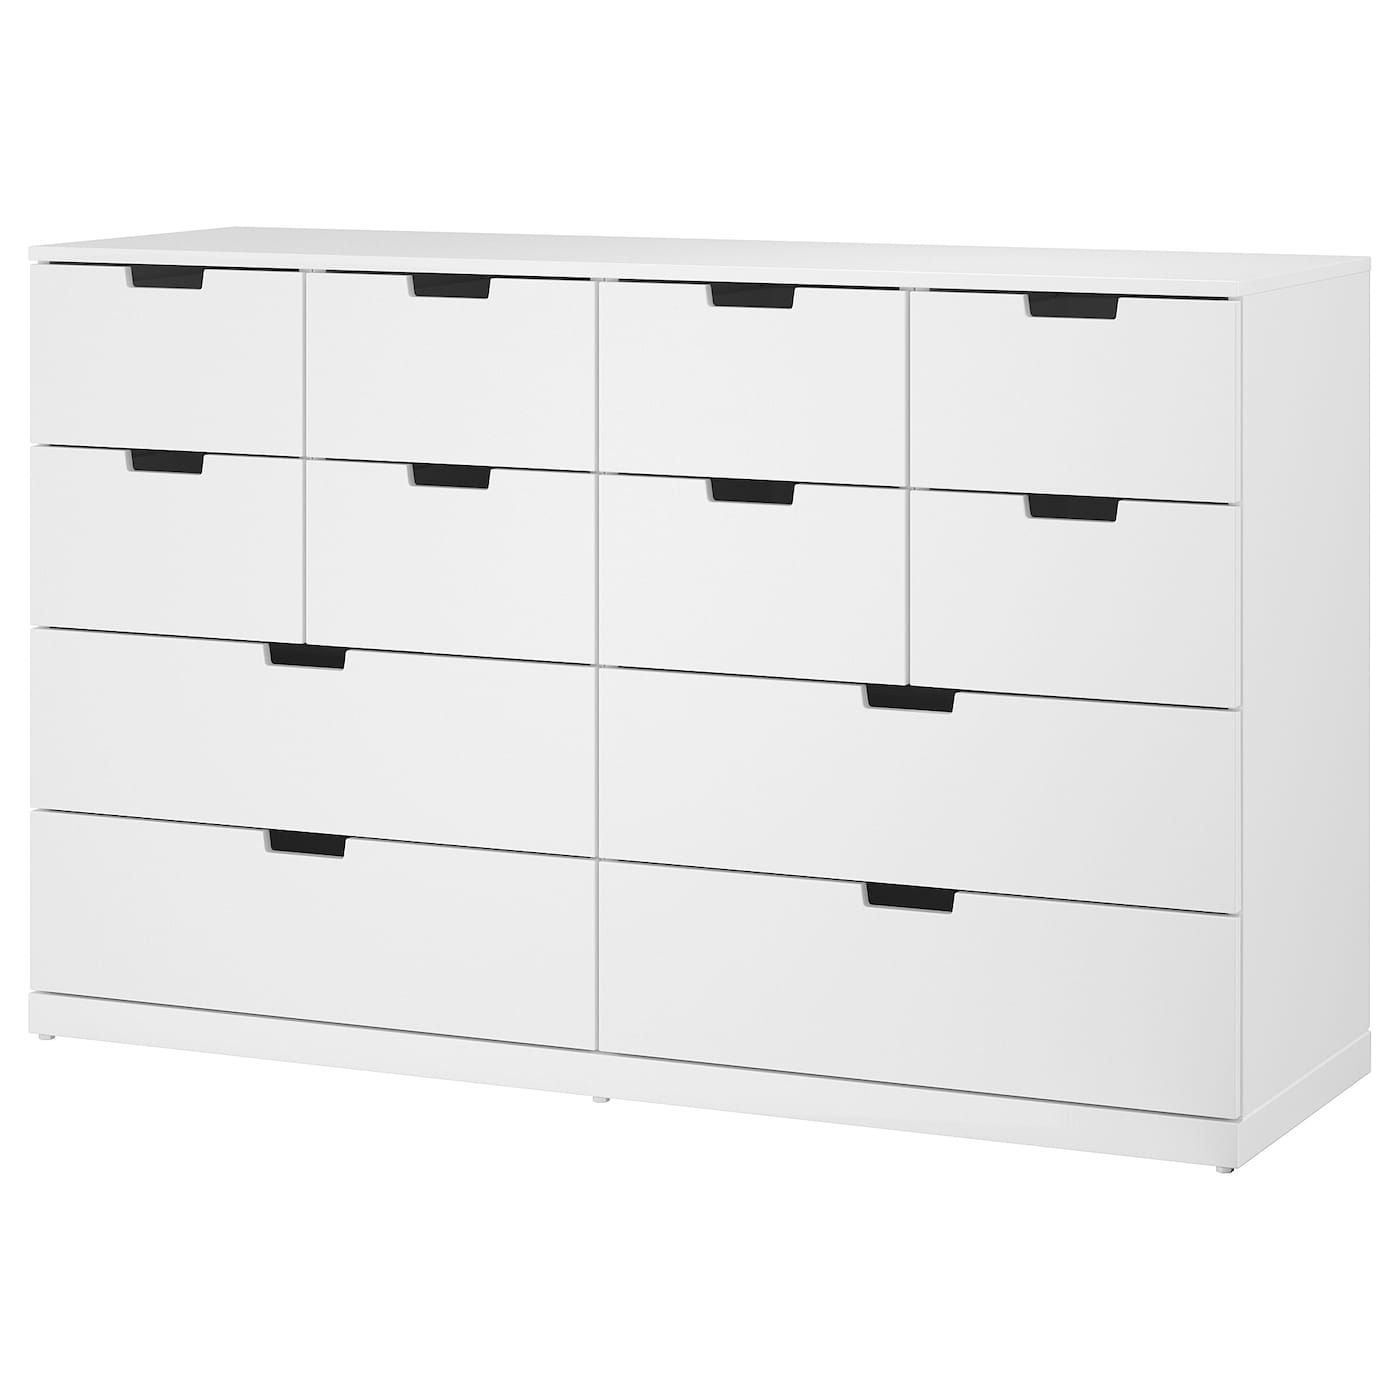 Malm Ladekast Berkenfineer.Ladekast Ikea Nordli Ladekast 8 Lades Ikea Craft Room Ideas Chest Of